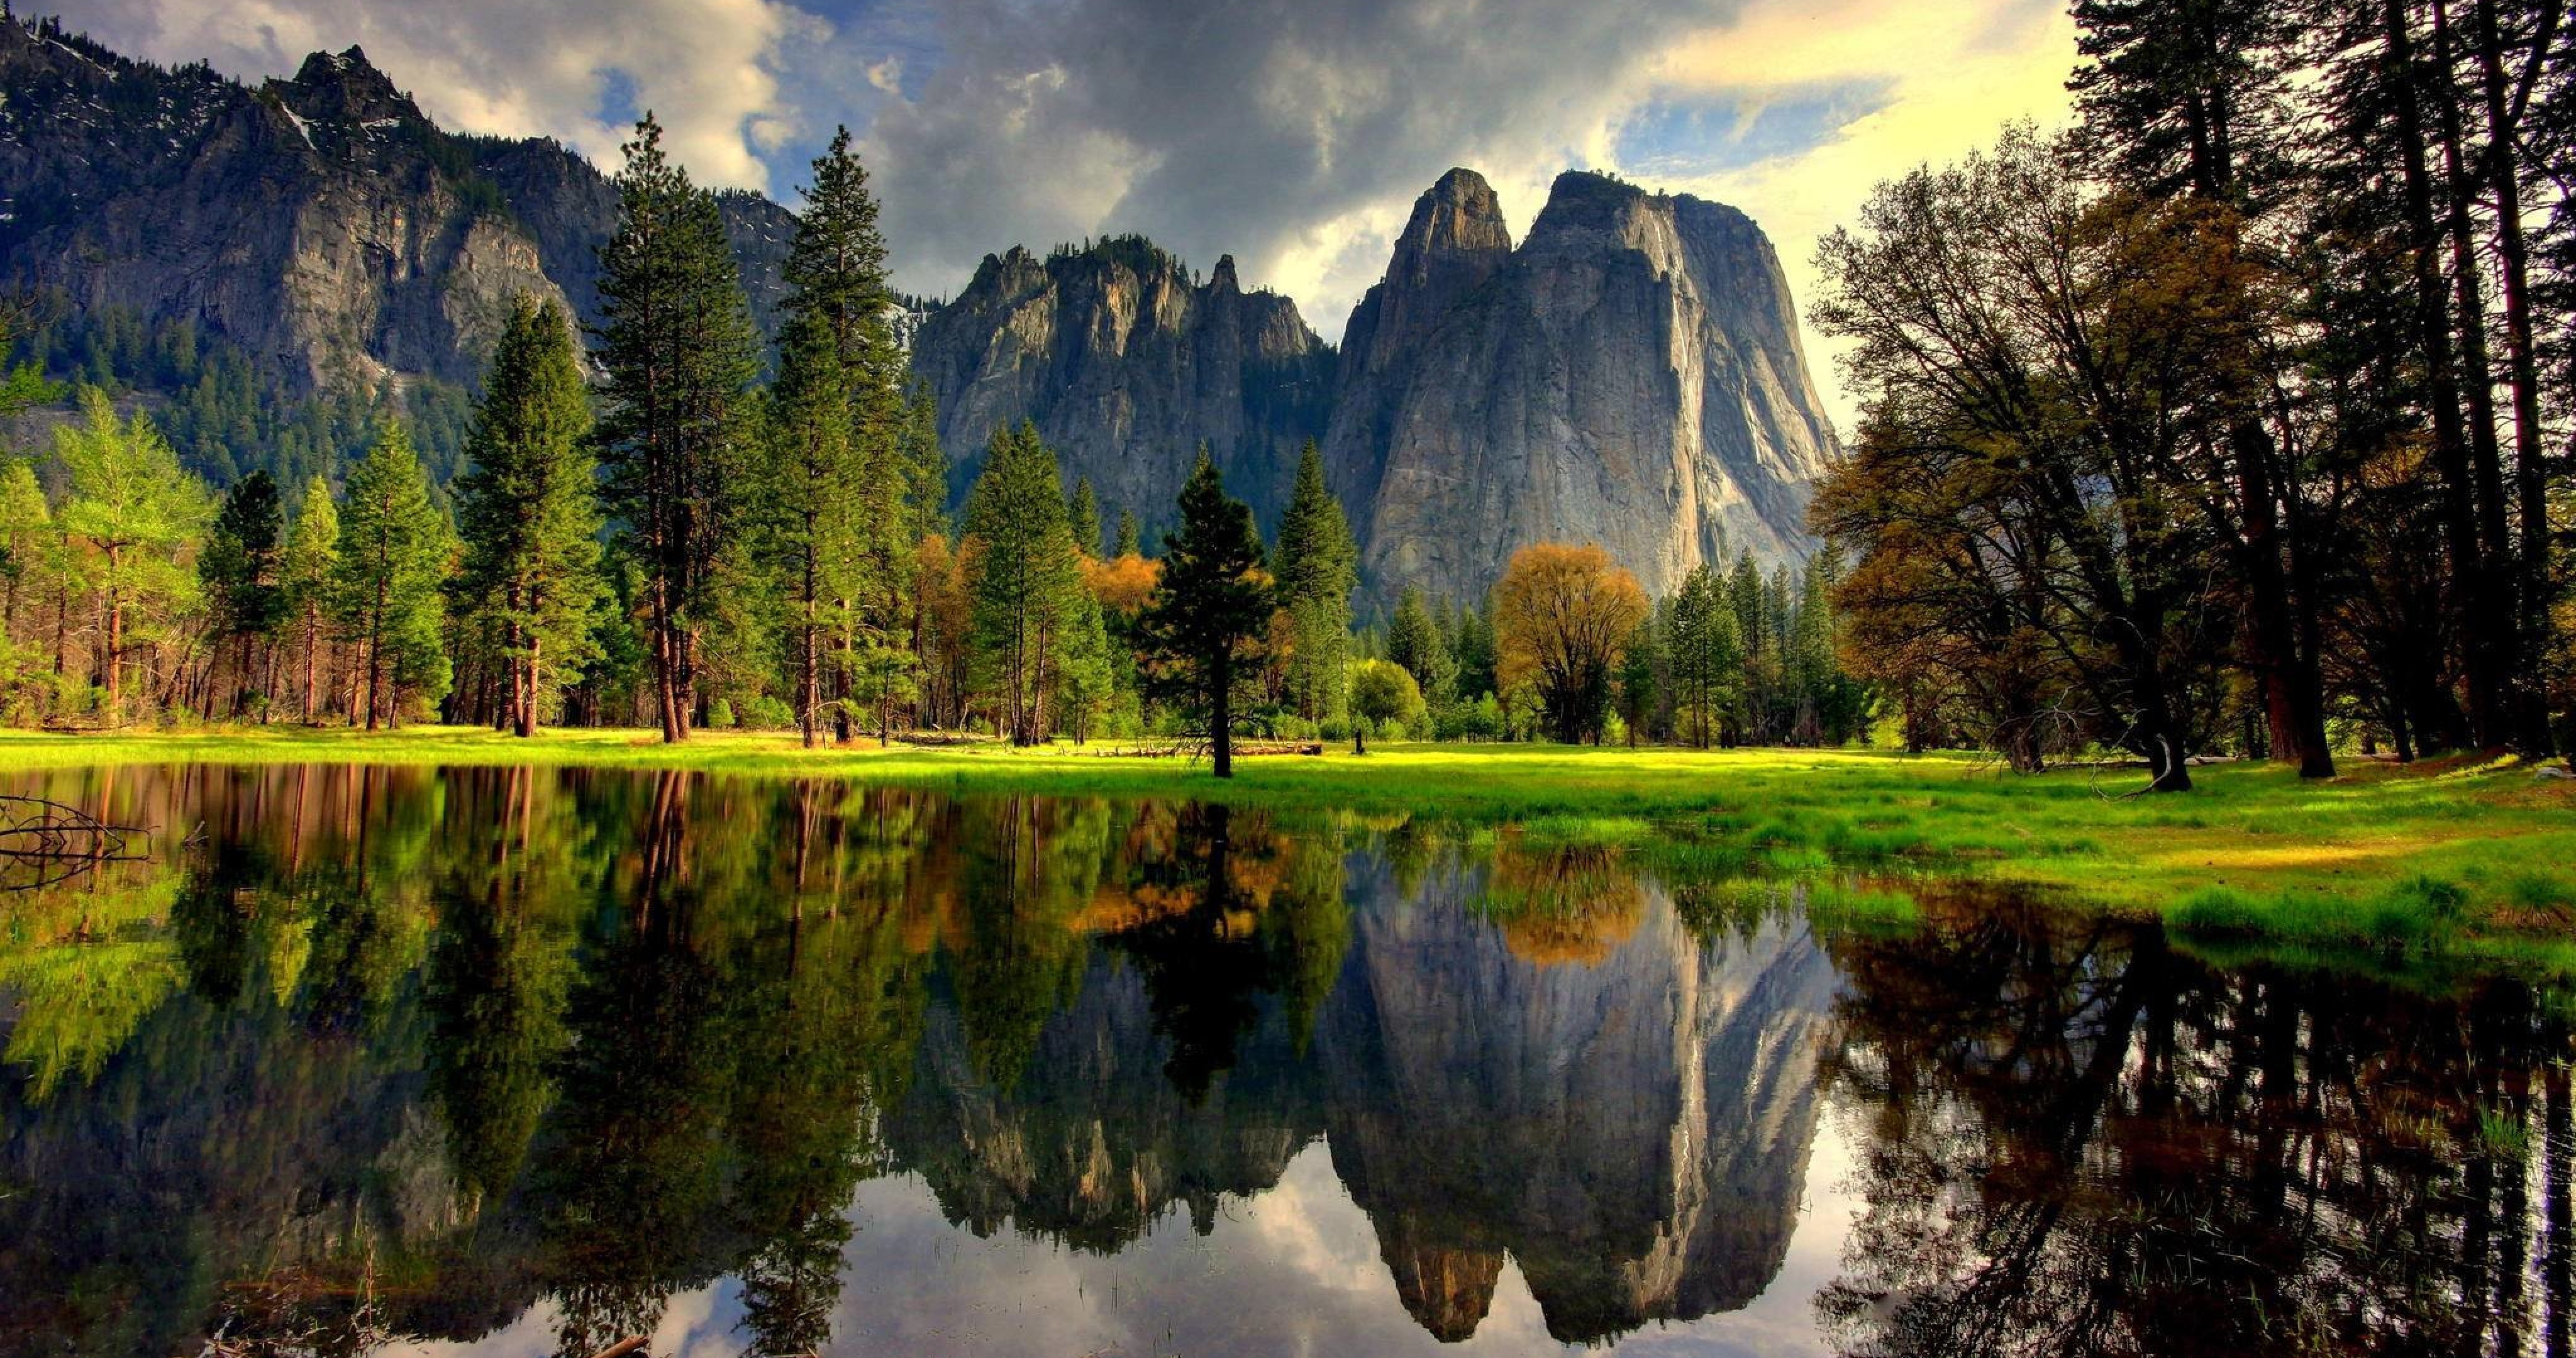 yosemite national park 24 4k ultra hd wallpaper high quality walls